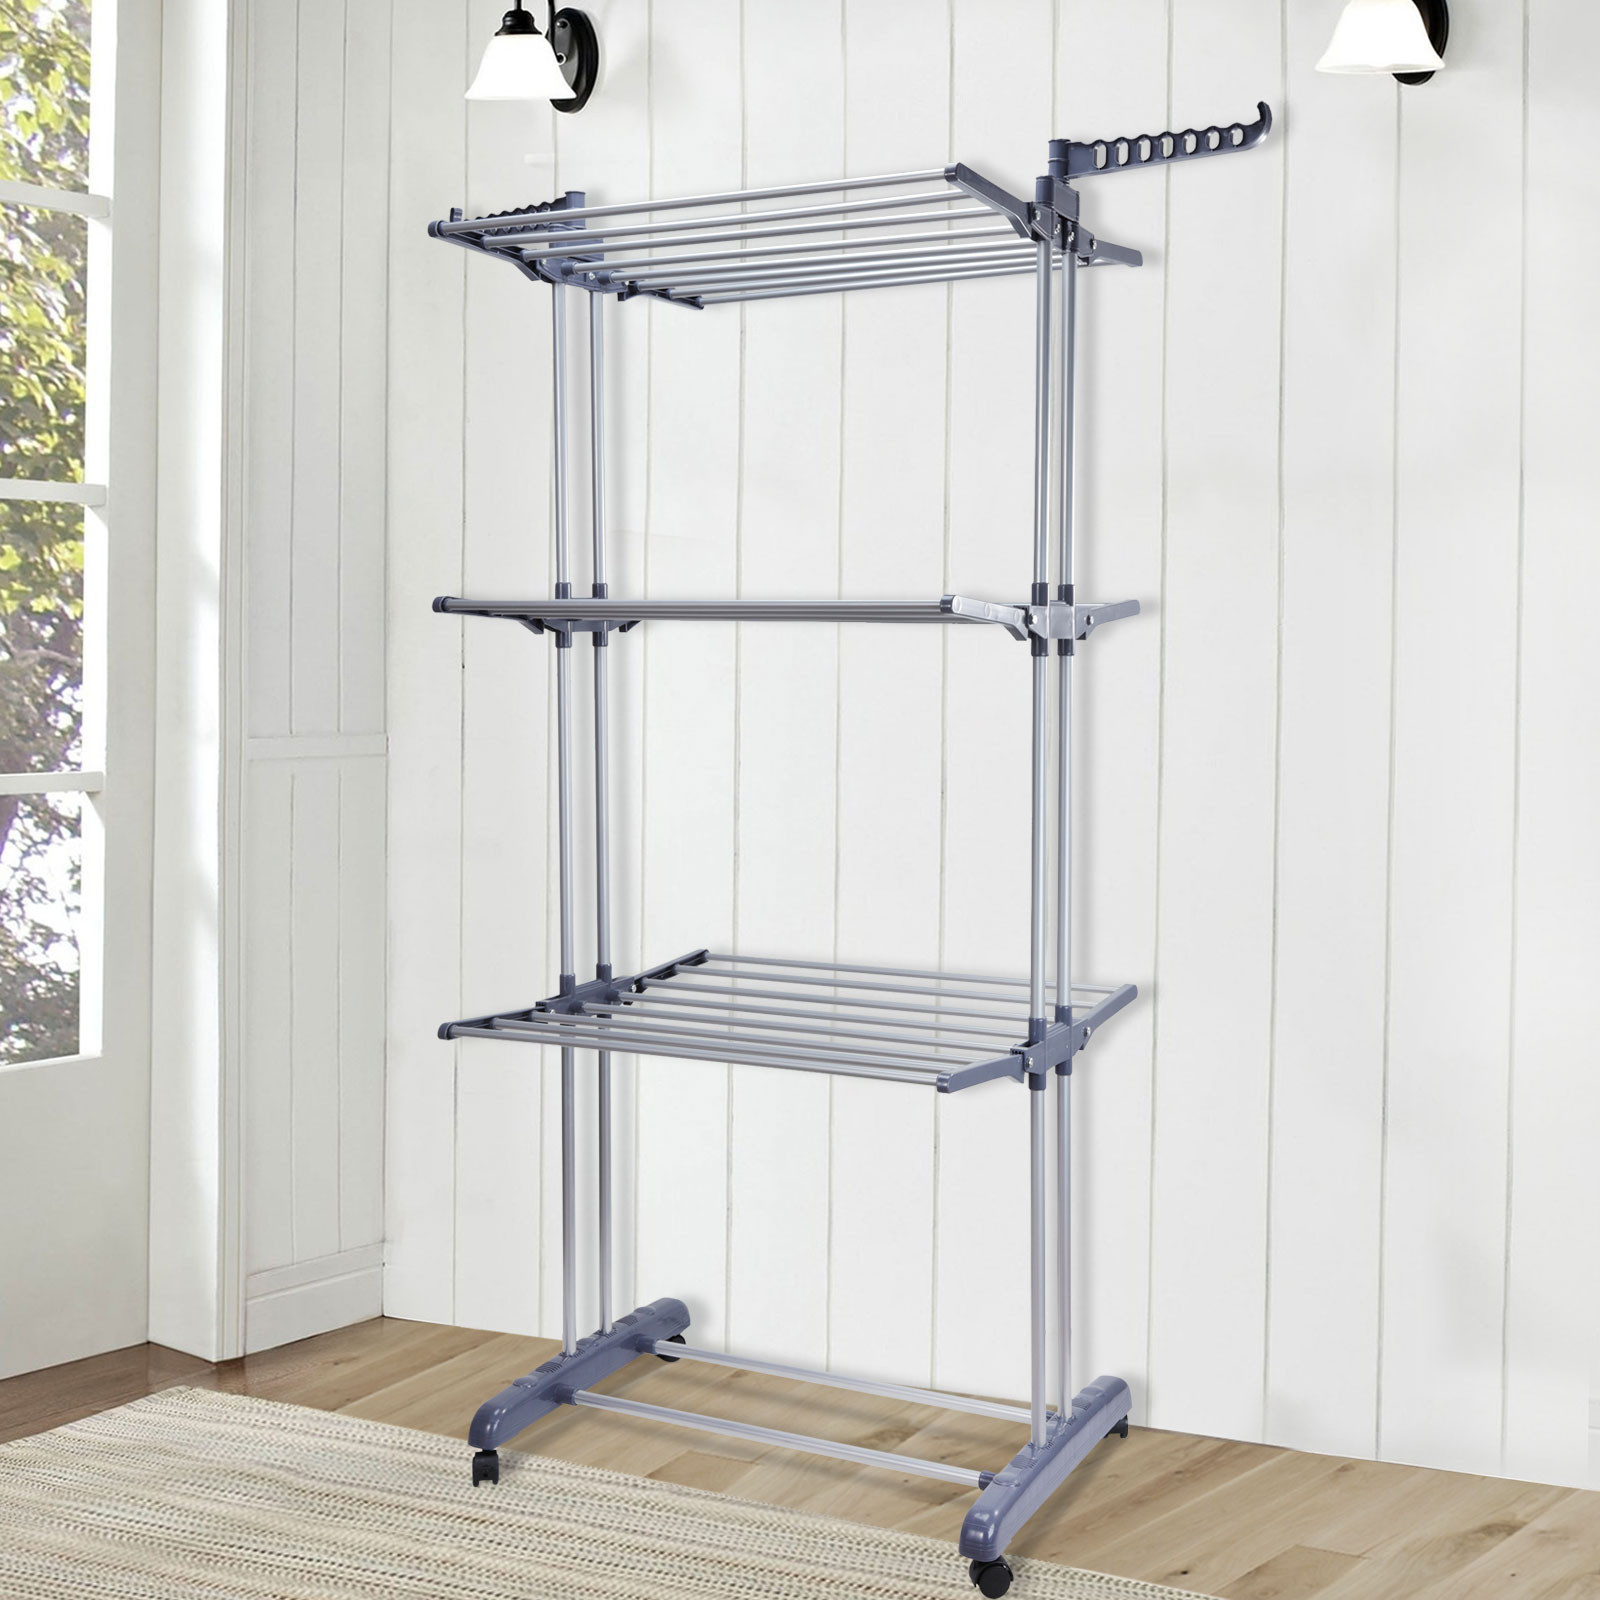 clothes airer horse 6 tiers laundry washing drying rack. Black Bedroom Furniture Sets. Home Design Ideas